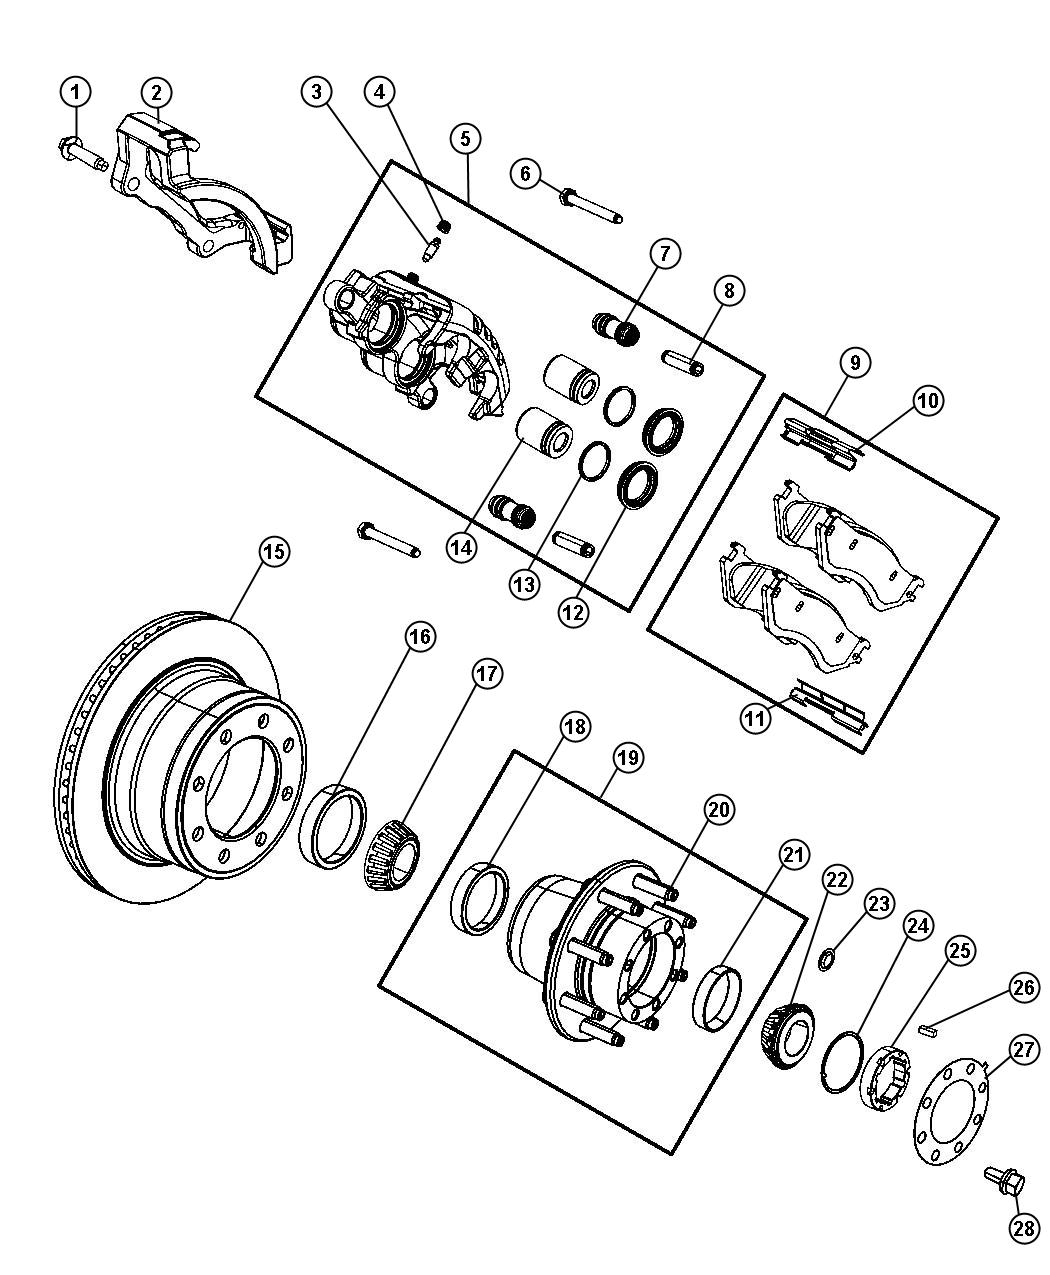 Service manual [Diagram For A 2008 Dodge Ram Swingarm